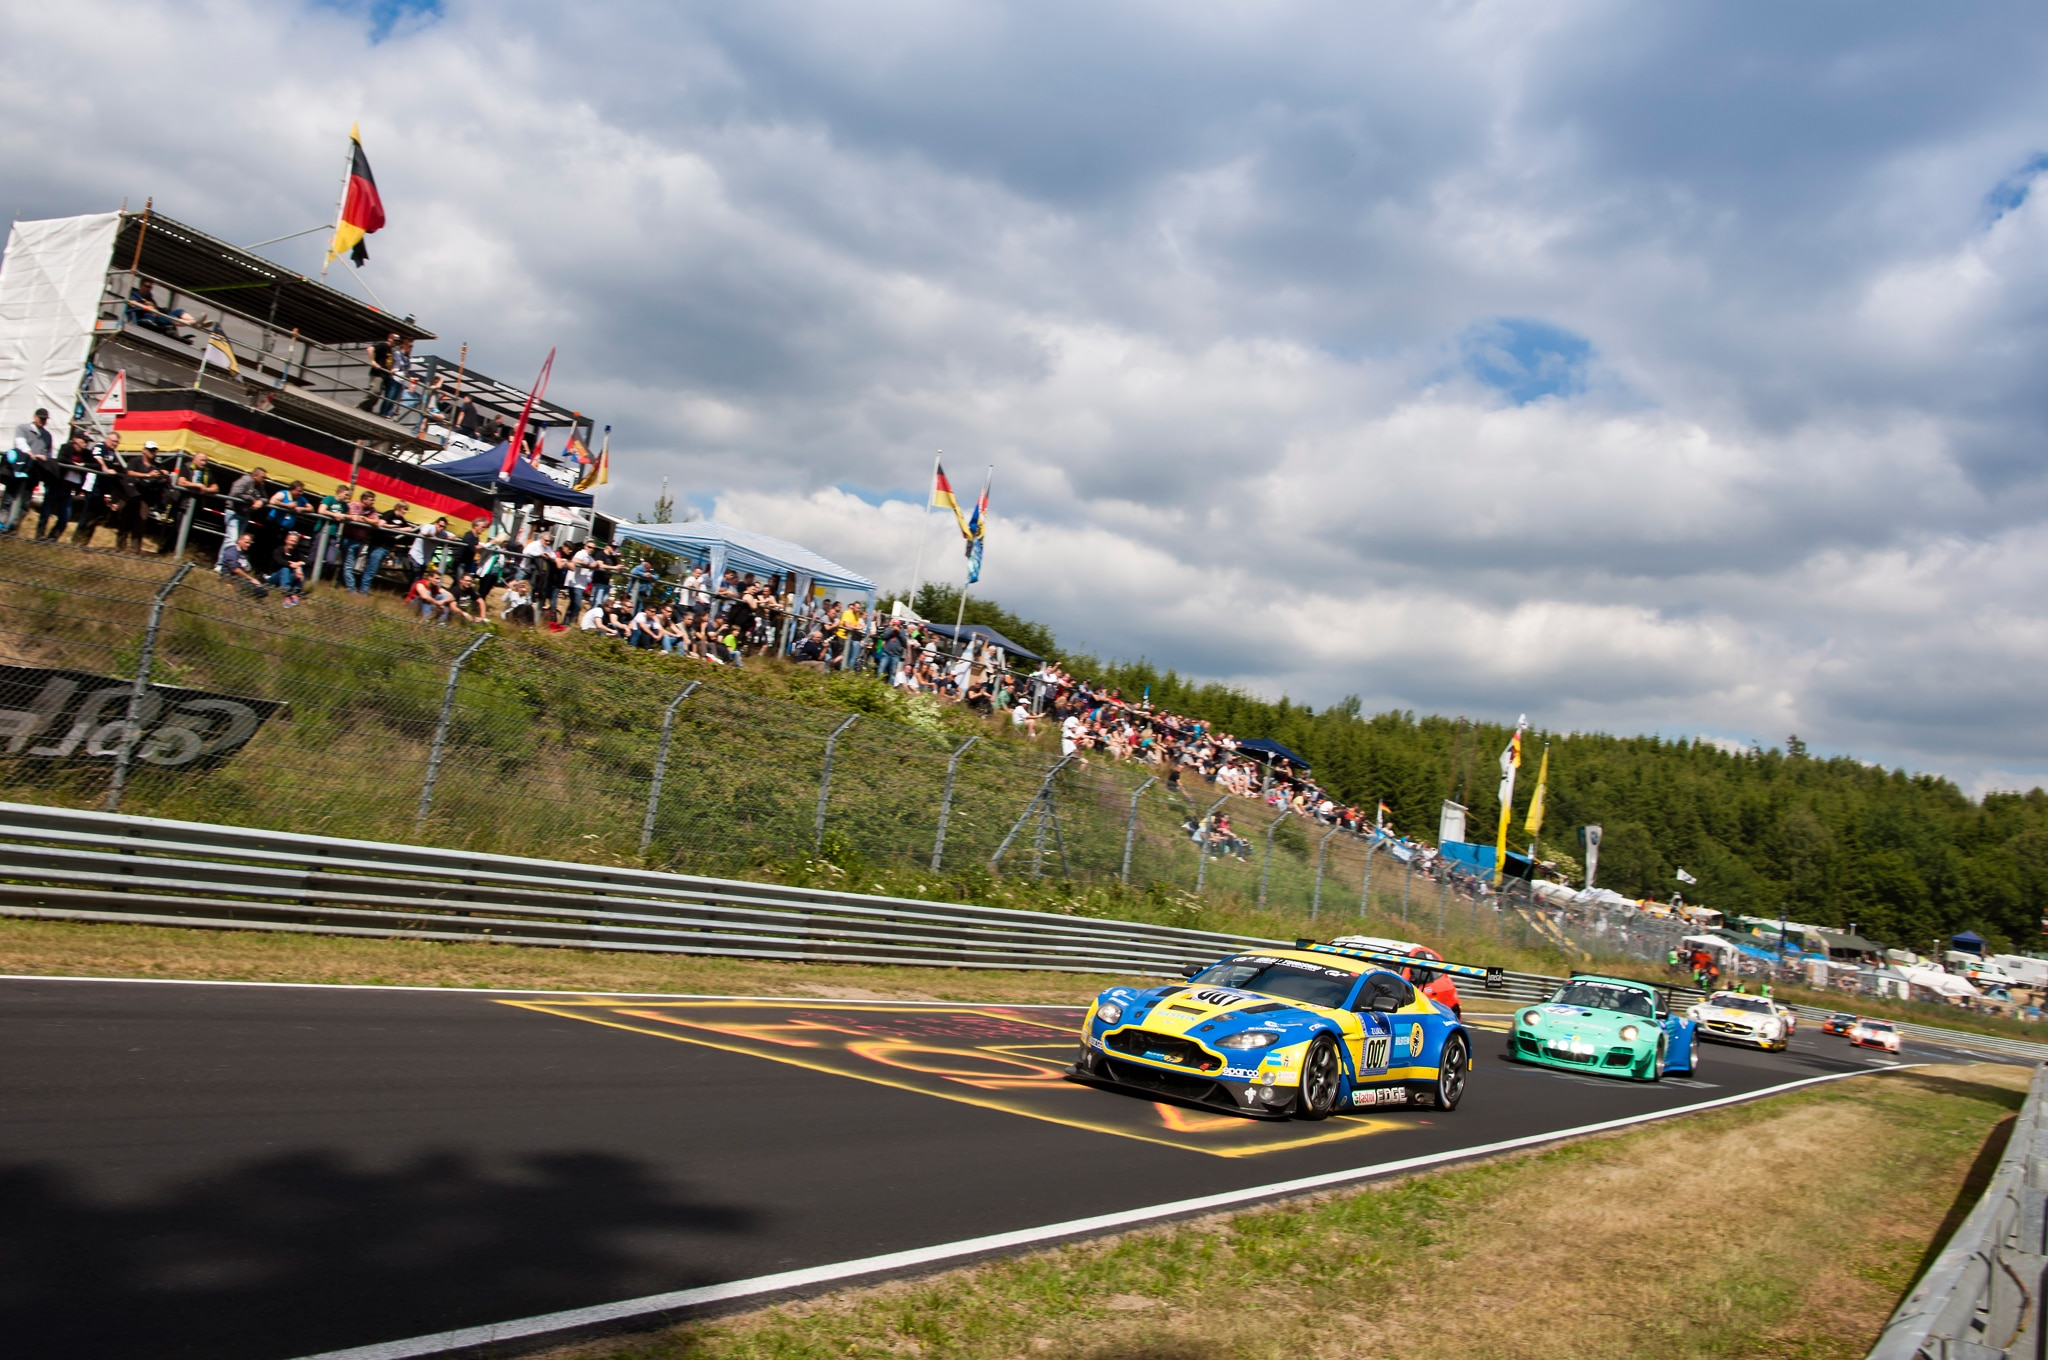 Aston Martin At 2014 Nurburgring 24 Hours Tracks